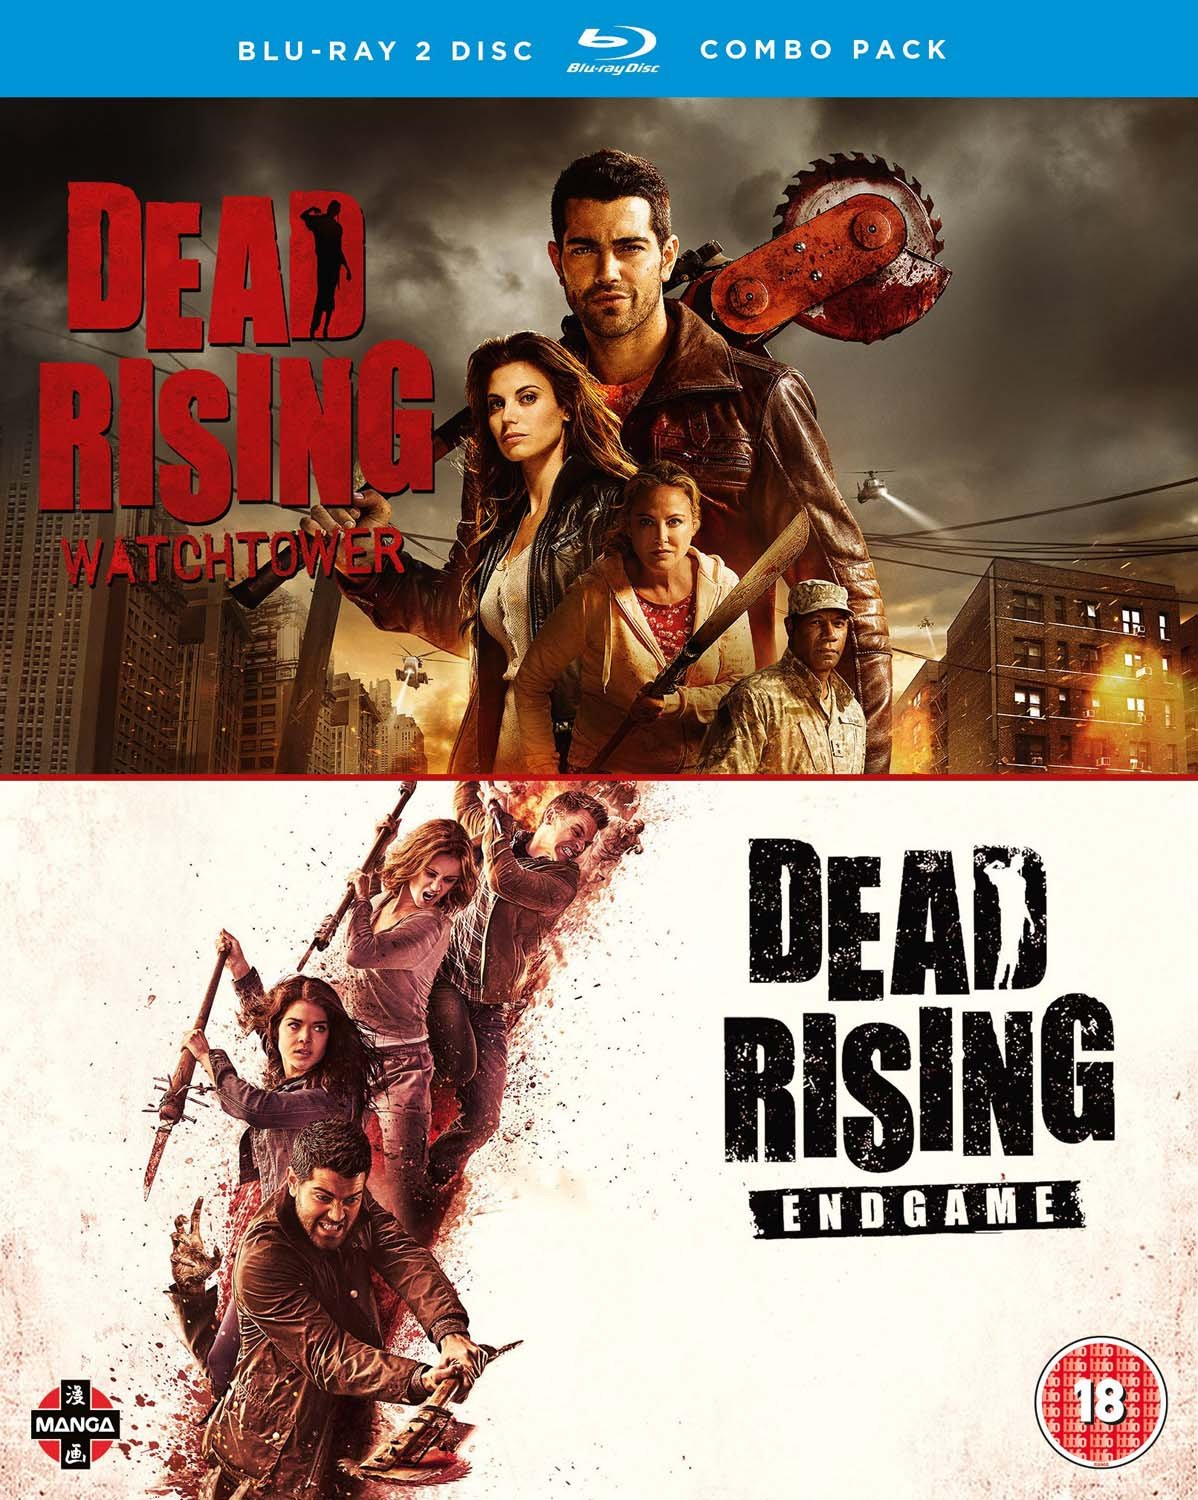 Amazon Com Dead Rising Watchtower Endgame Double Pack Blu Ray Movies Tv